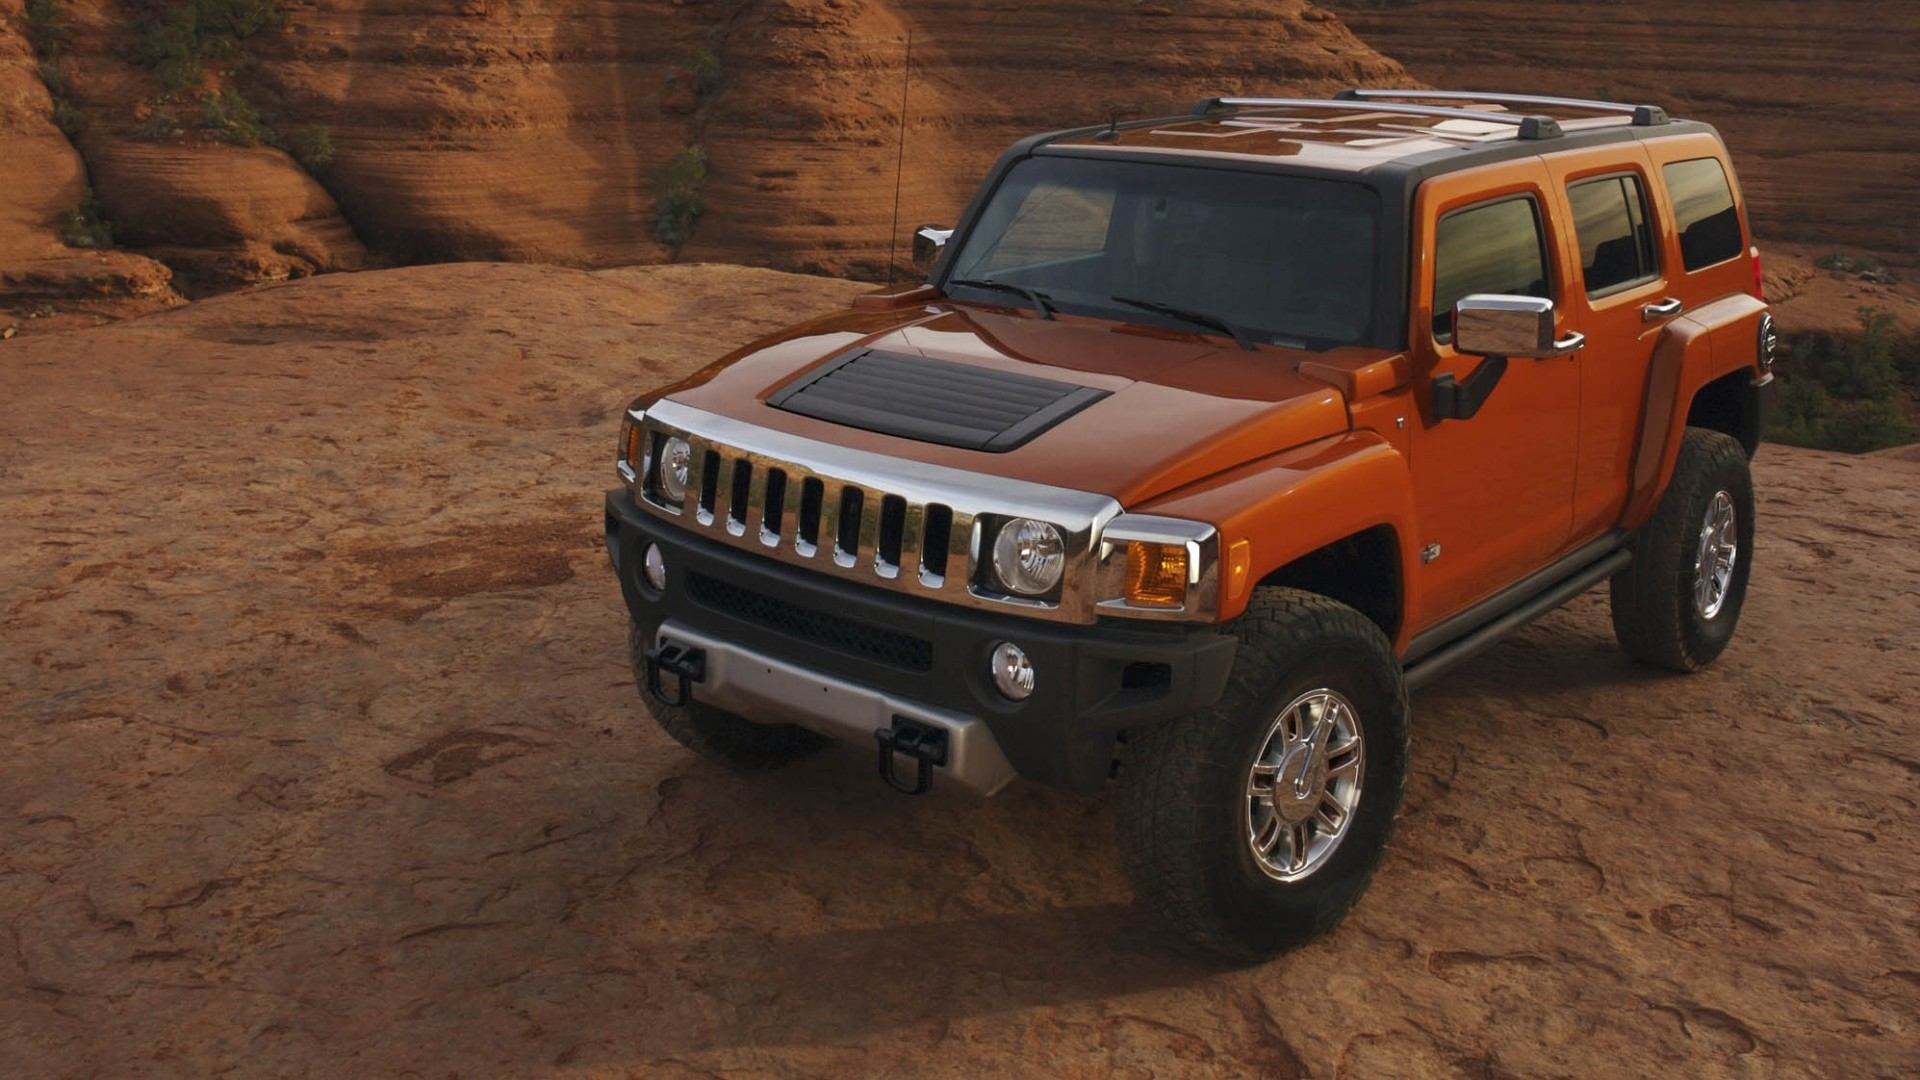 Res: 1920x1080, Hummer H3 Wallpapers 5 - 1920 X 1080